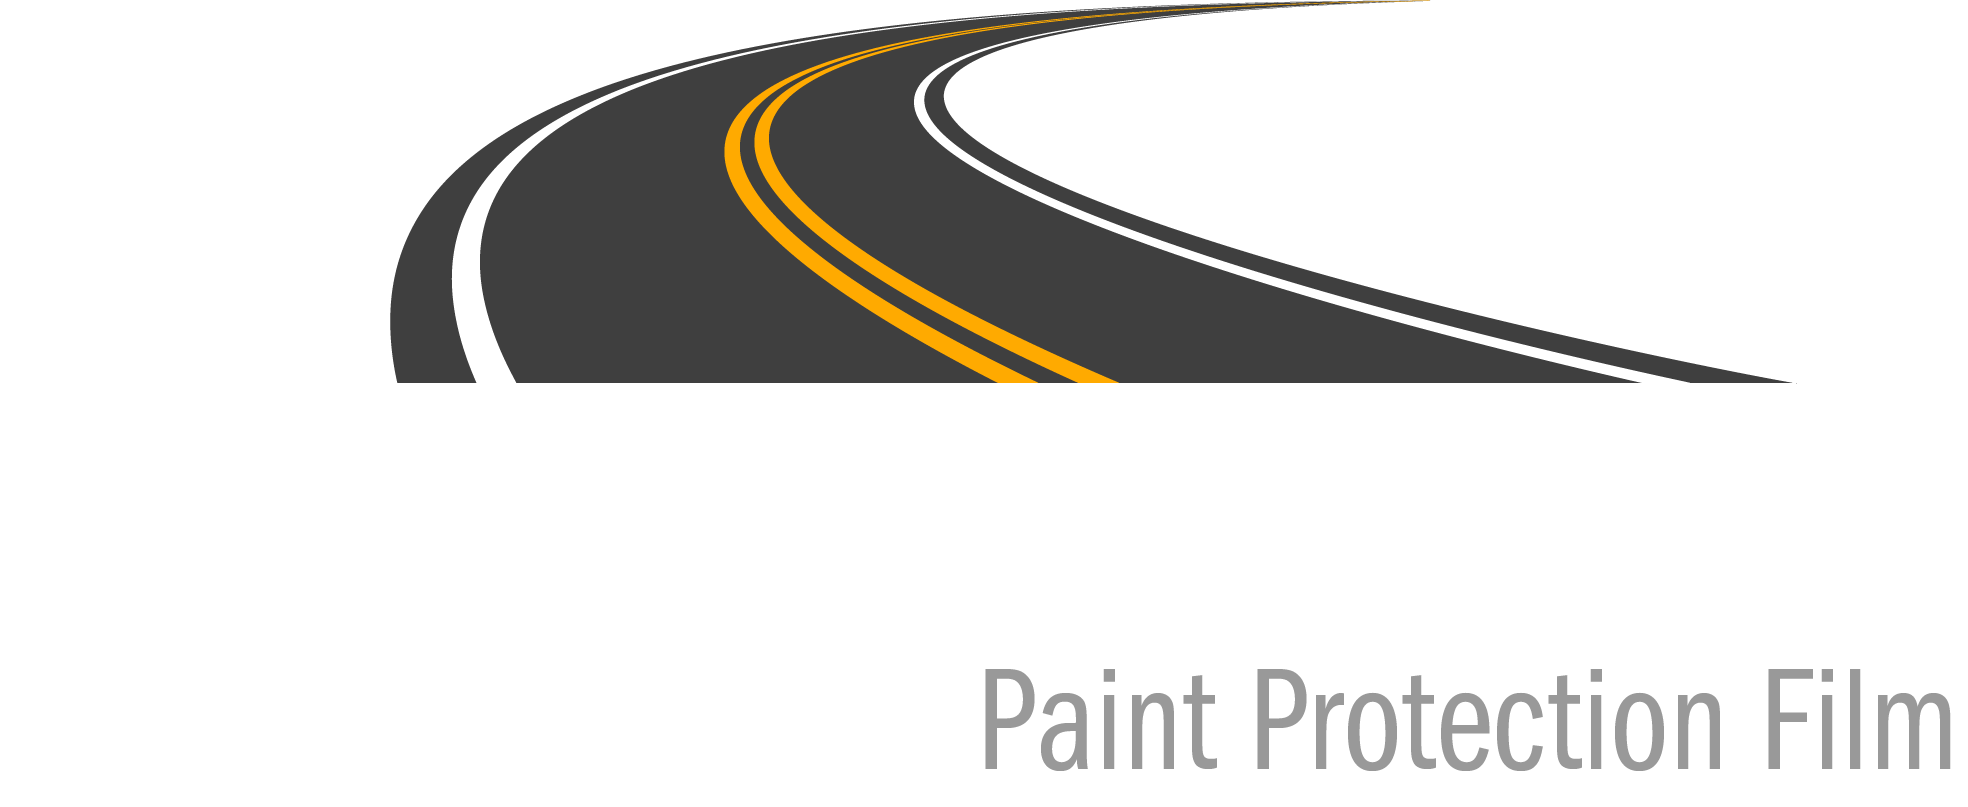 Road Guard - Paint Protection Film from Tint Ohio